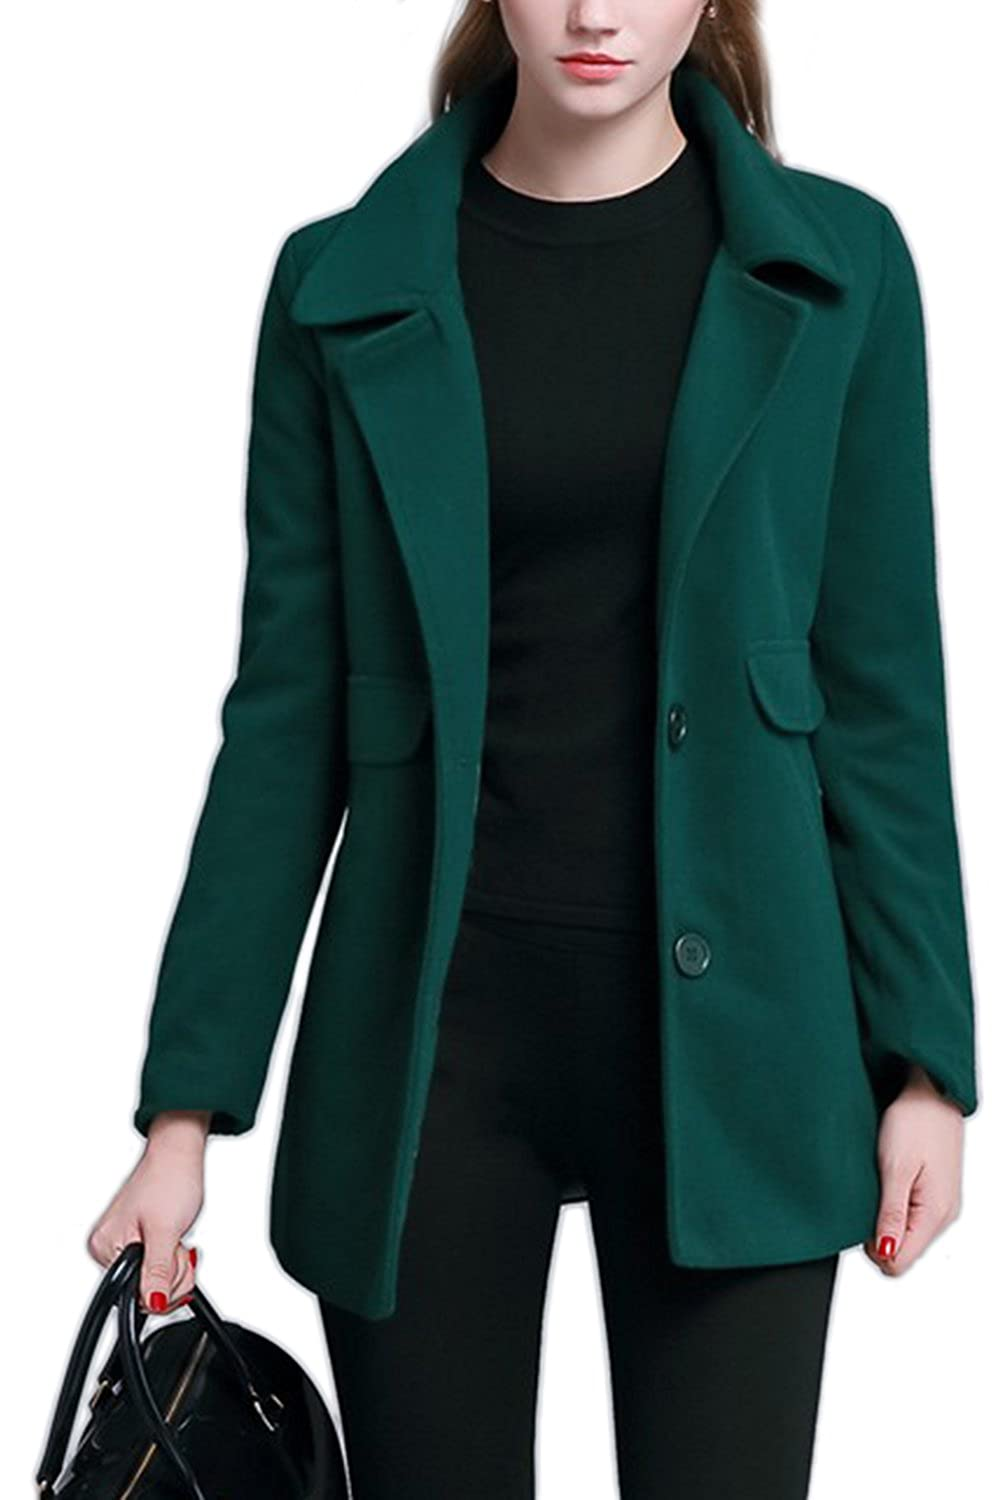 Women's Thicken Single Breasted Woolen Trenchcoat Outwear